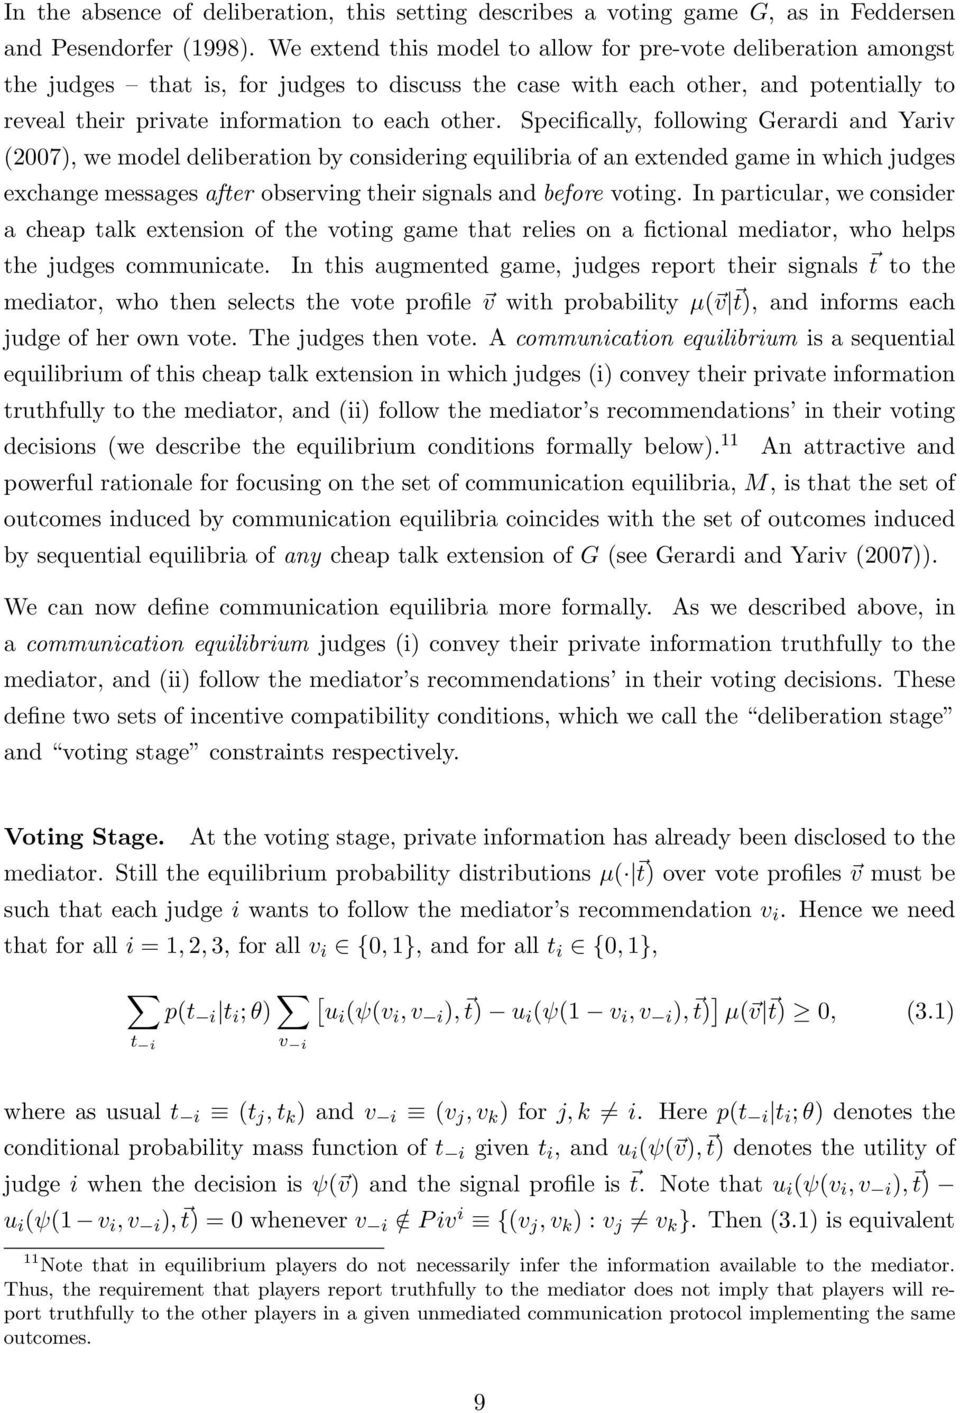 Specifically, following Gerardi and Yariv (2007), we model deliberation by considering equilibria of an extended game in which judges exchange messages after observing their signals and before voting.